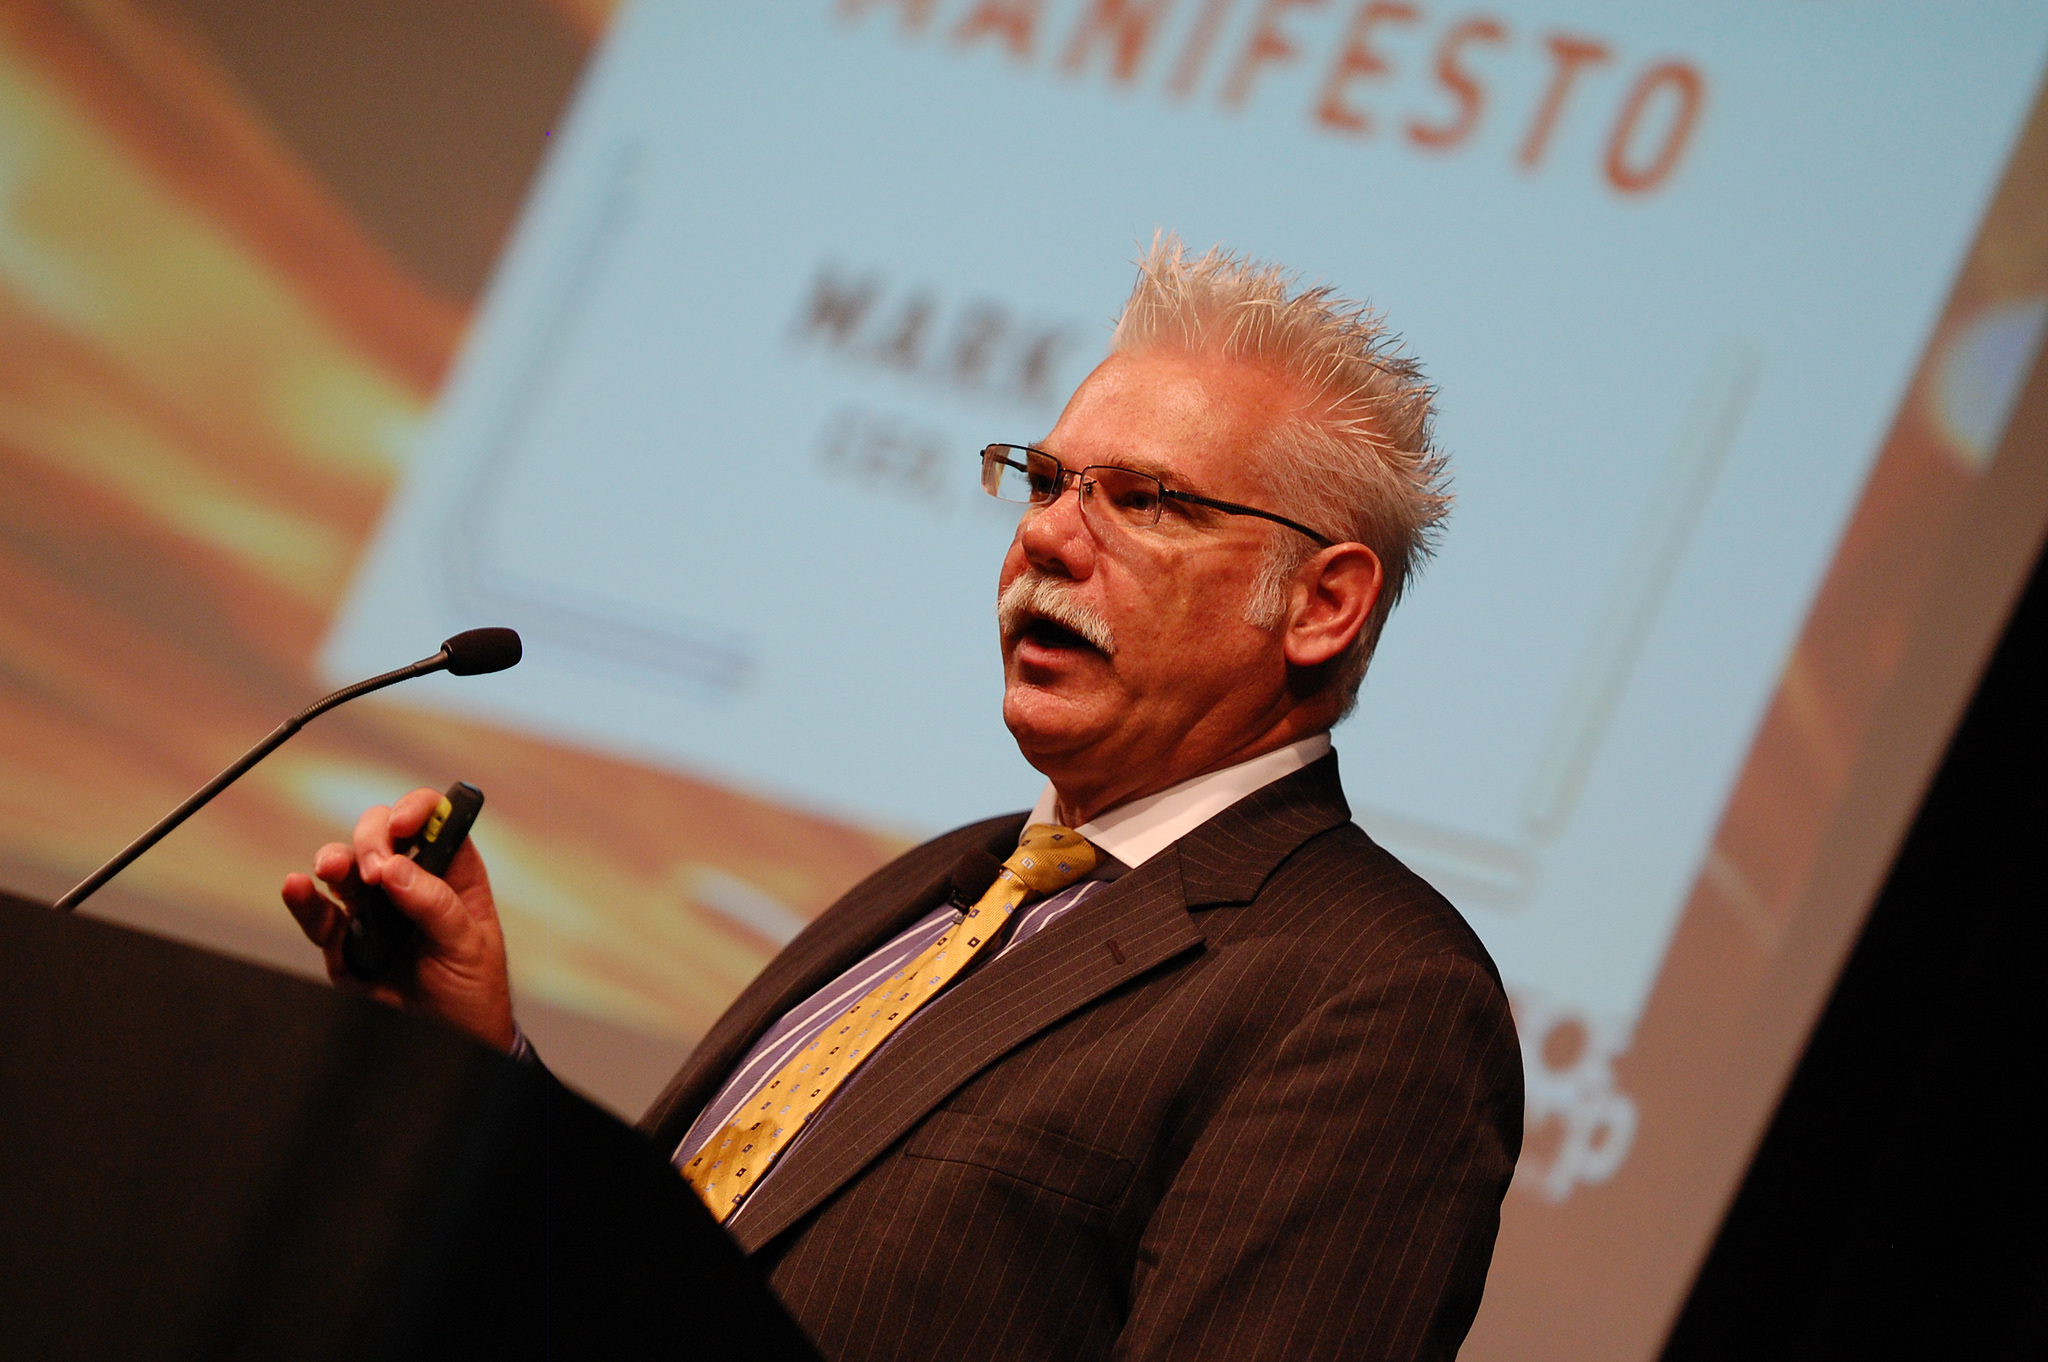 Mark Hatch, former CEO of TechShop and author of The Maker Movement Manifesto. Photo by Kevin Krejci.